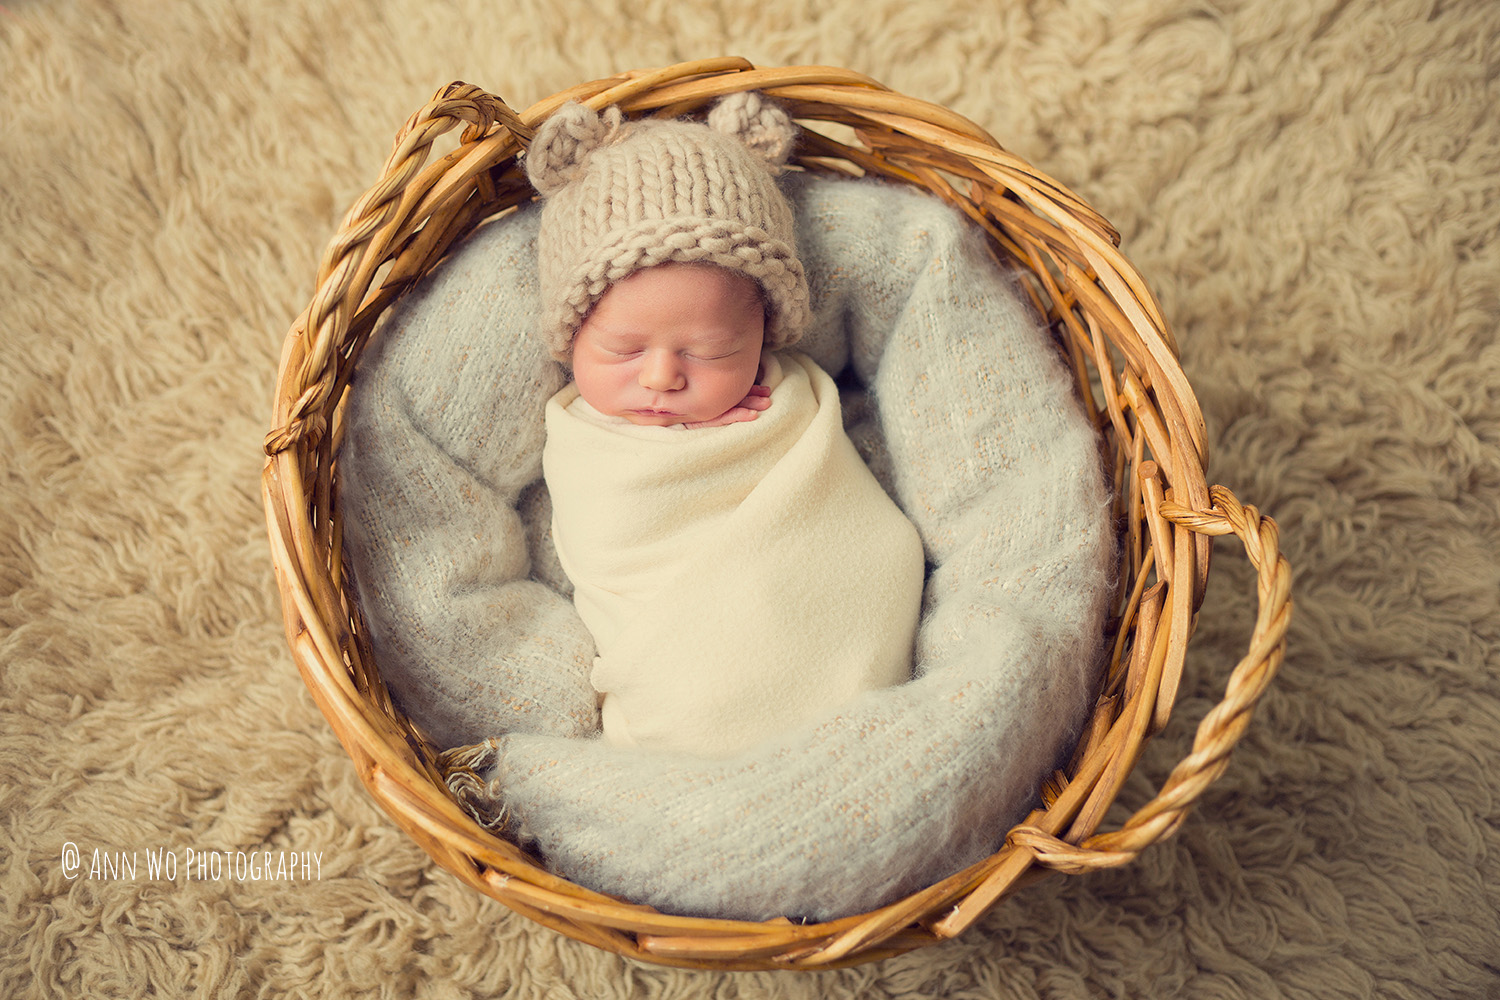 baby-photographer-london-ann-wo-basket-flokati-bear-hat.jpg